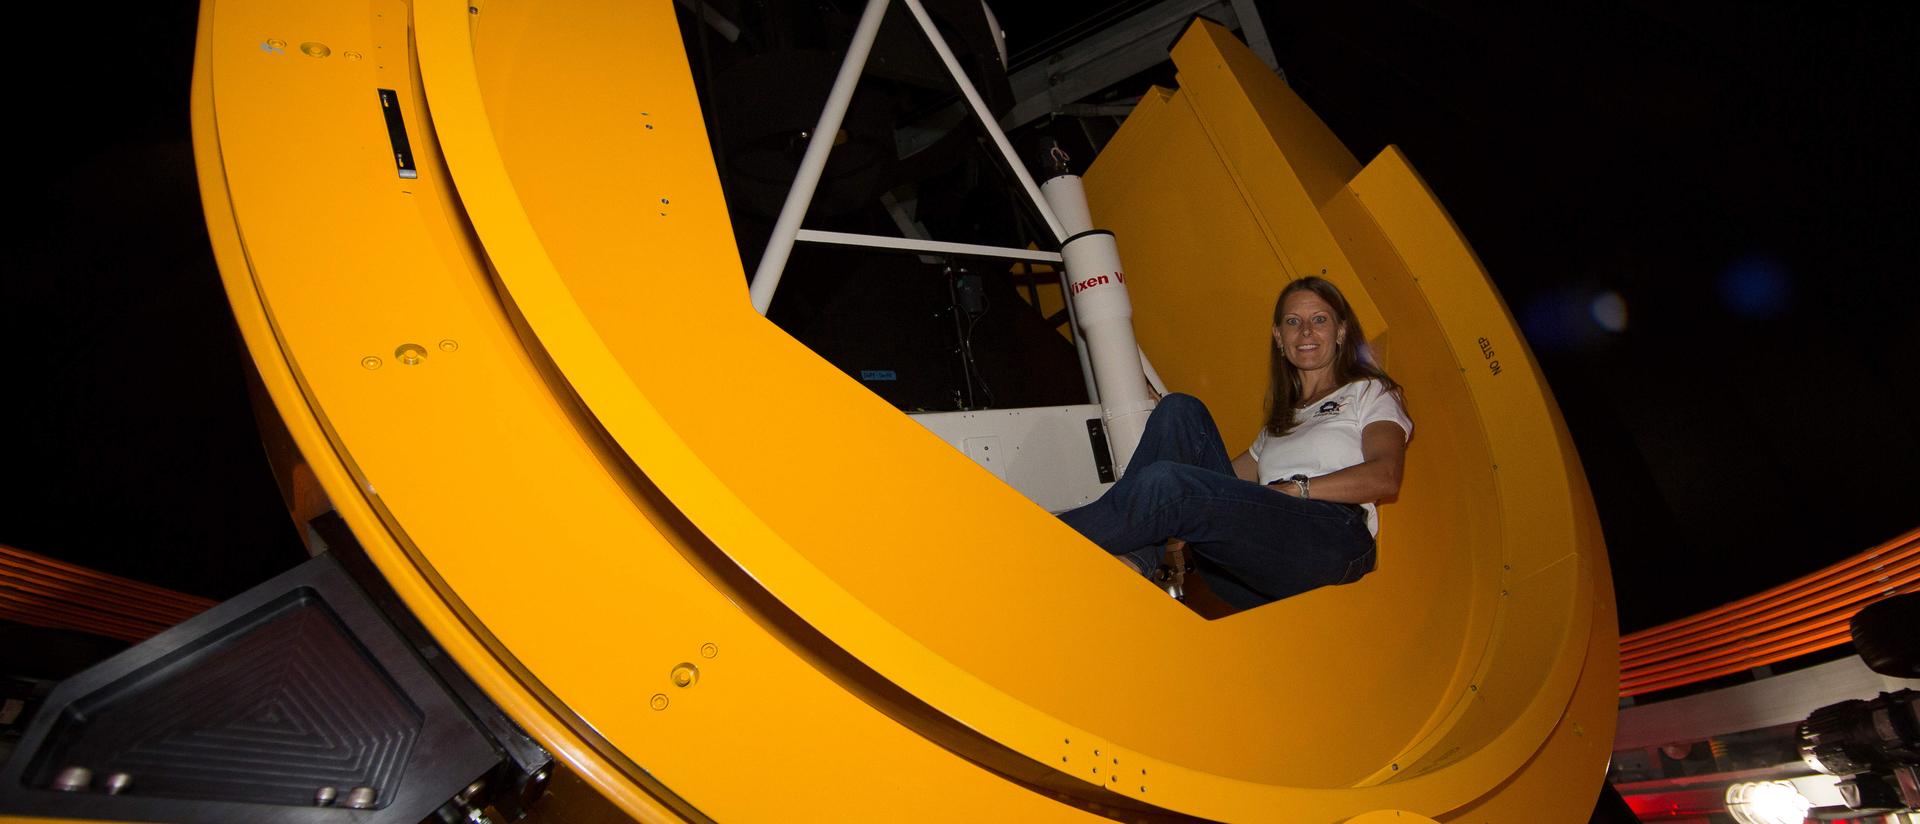 Alumna Susan Lederer in telescope she built for NASA